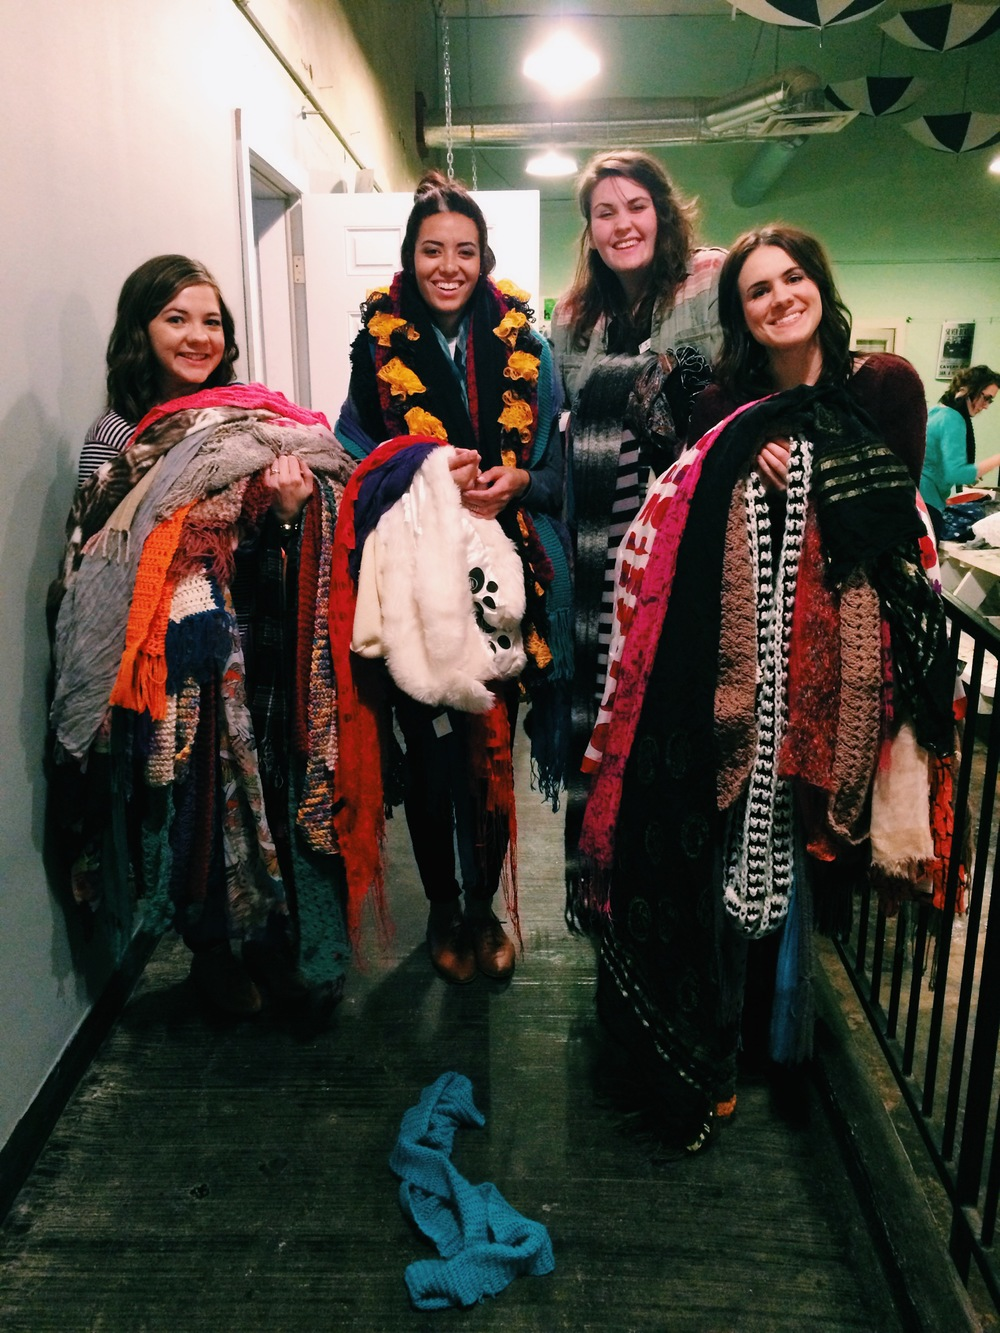 We asked everyone who came to the gathering to bring a coat or scarf, to donate to The Lovewell! Everyone was EXTREMELY generous, I've never seen so many scarves and coats!